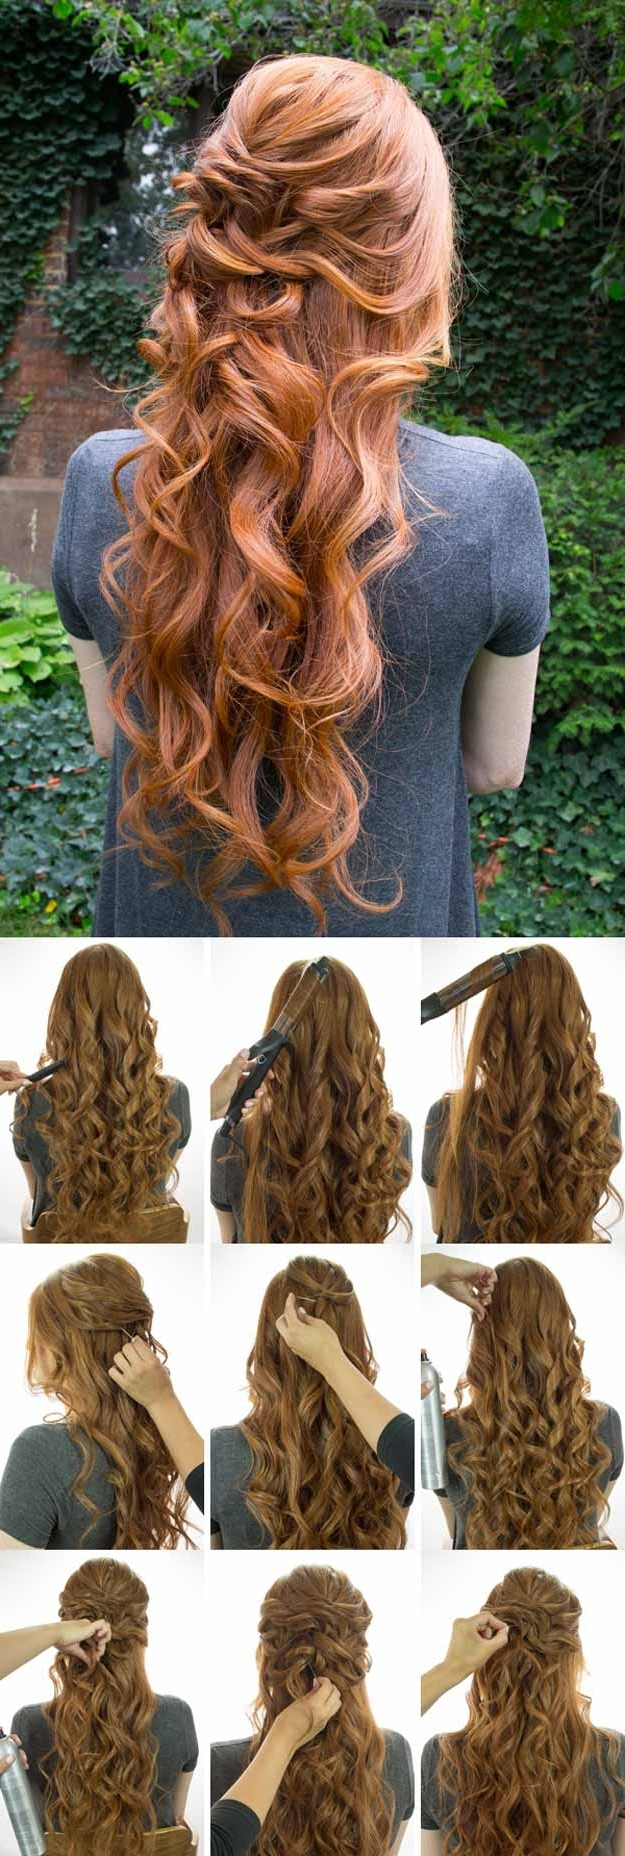 31 Wedding Hairstyles For Long Hair – The Goddess Throughout Most Up To Date Wedding Hairstyles For Long Loose Hair (View 8 of 15)